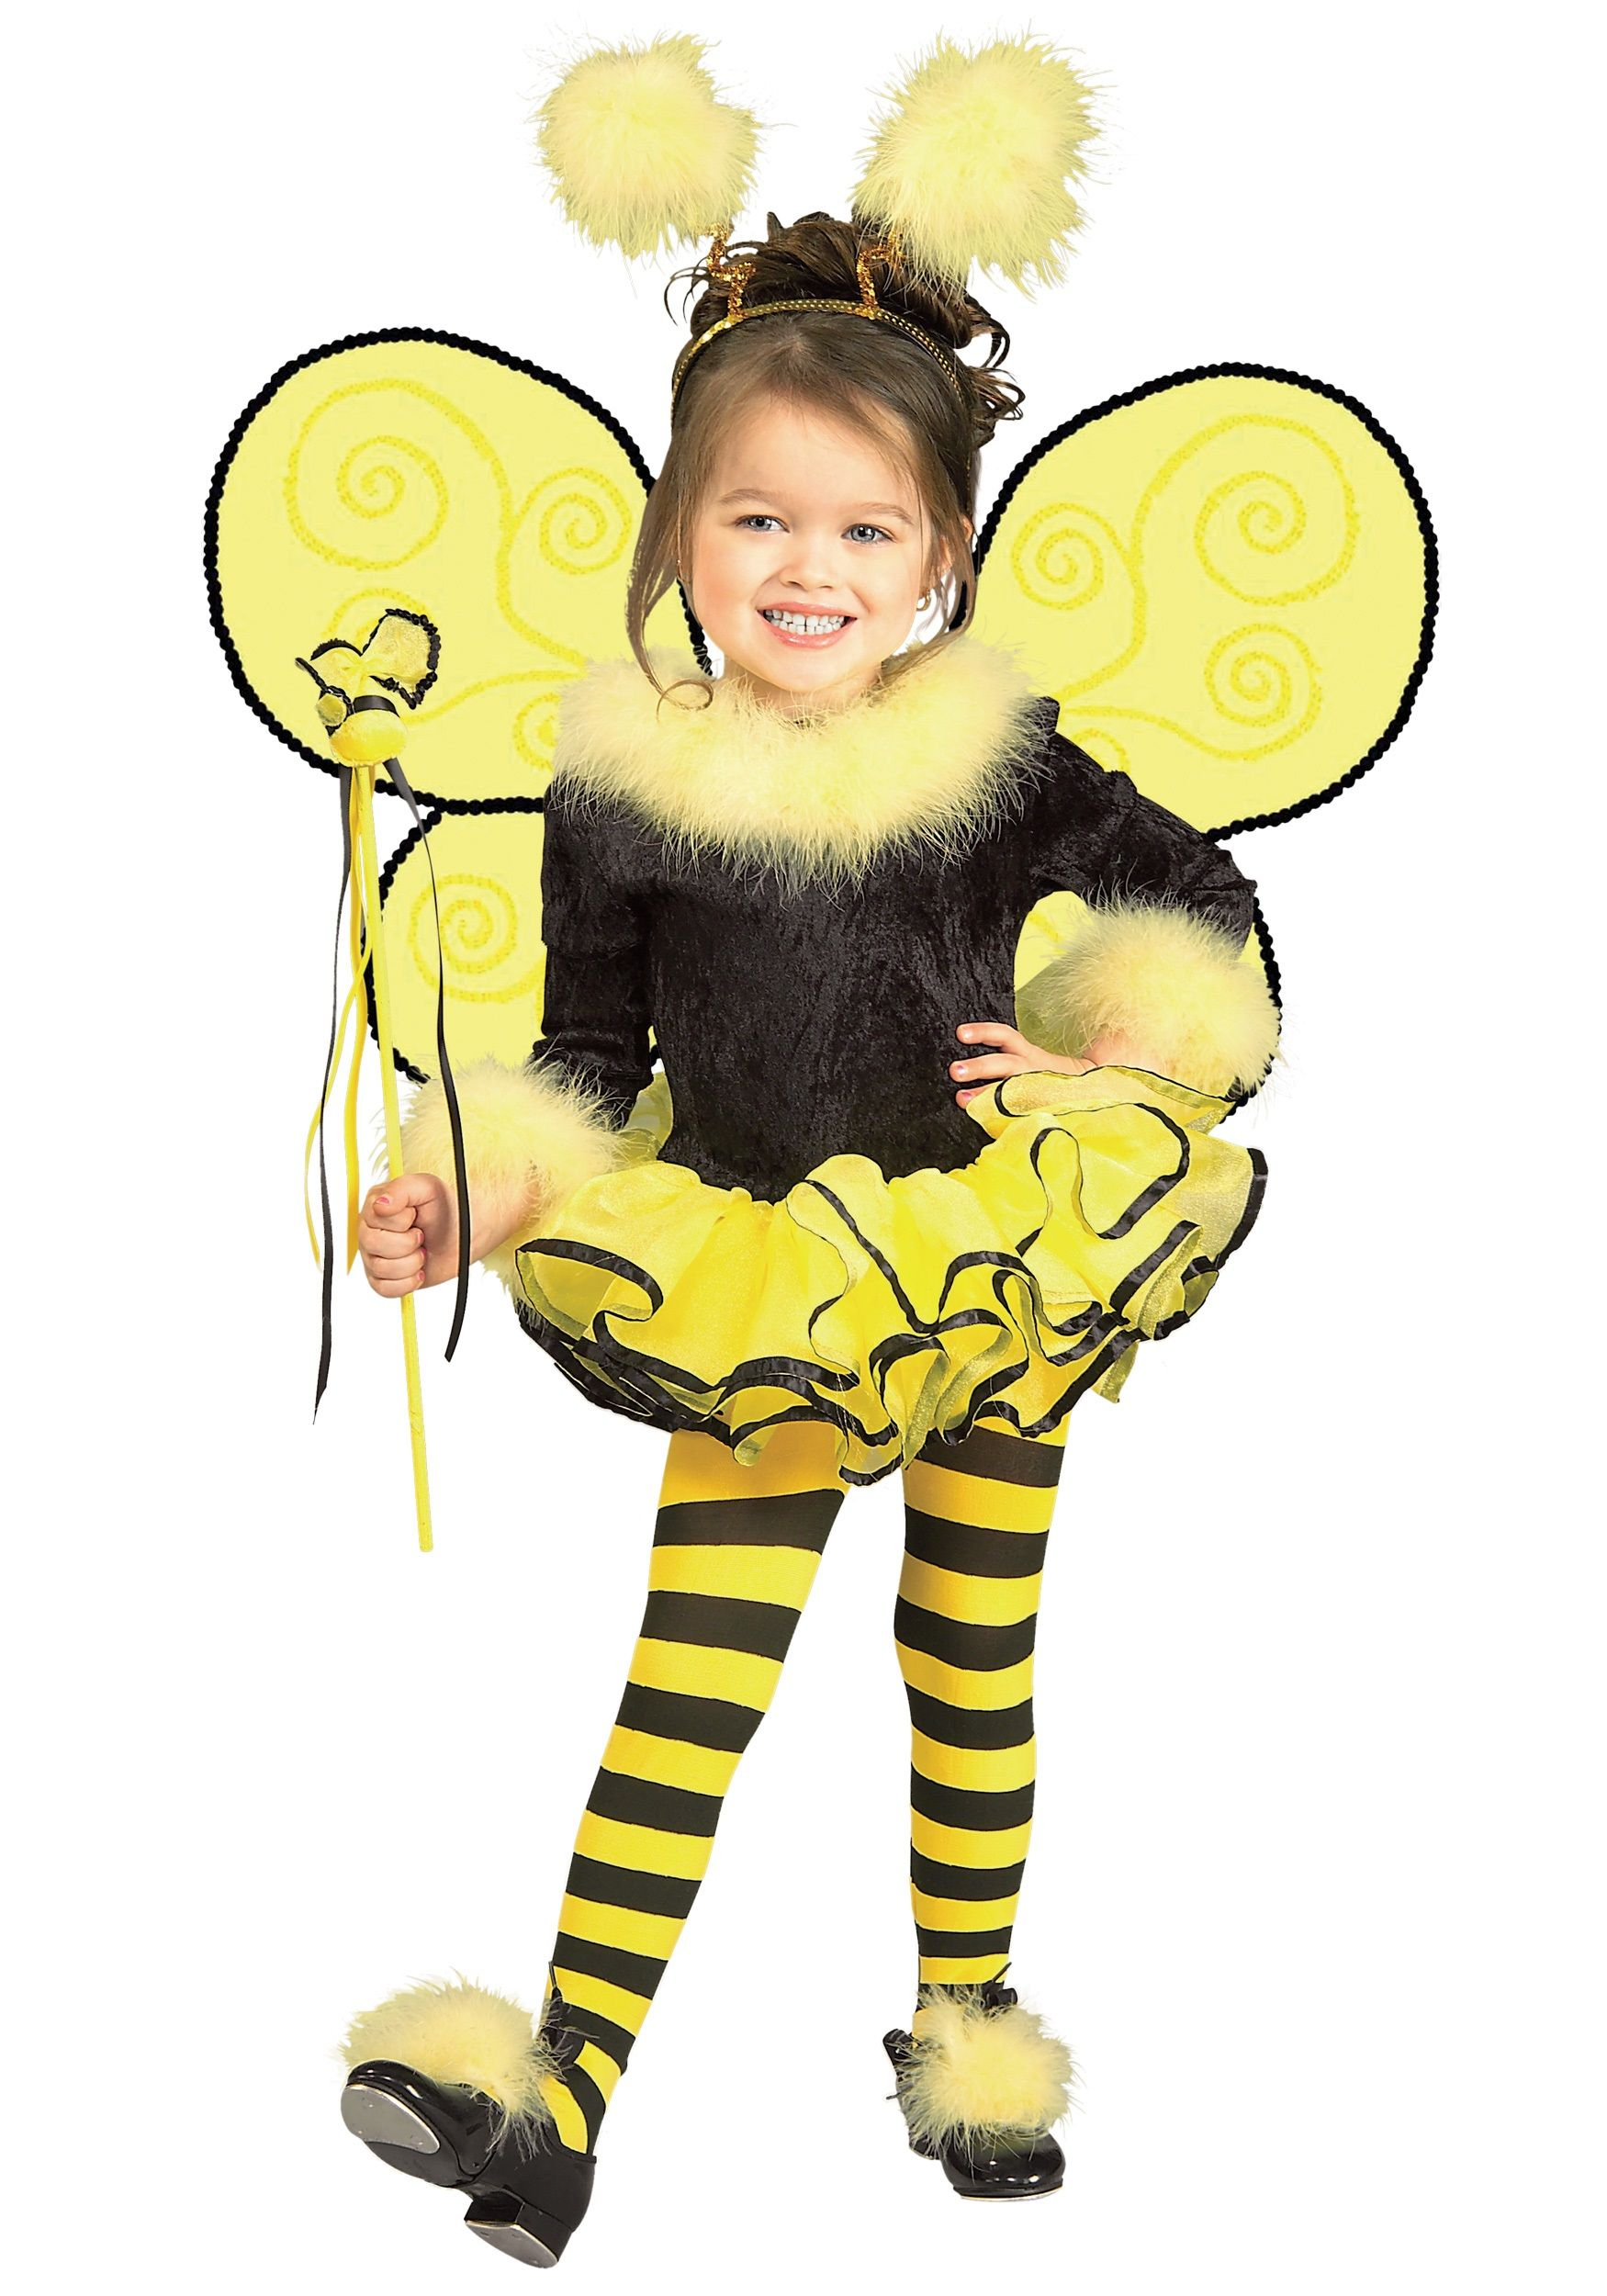 Toddler Bumble Bee Costume | Bumble bees, Costumes and Halloween ...